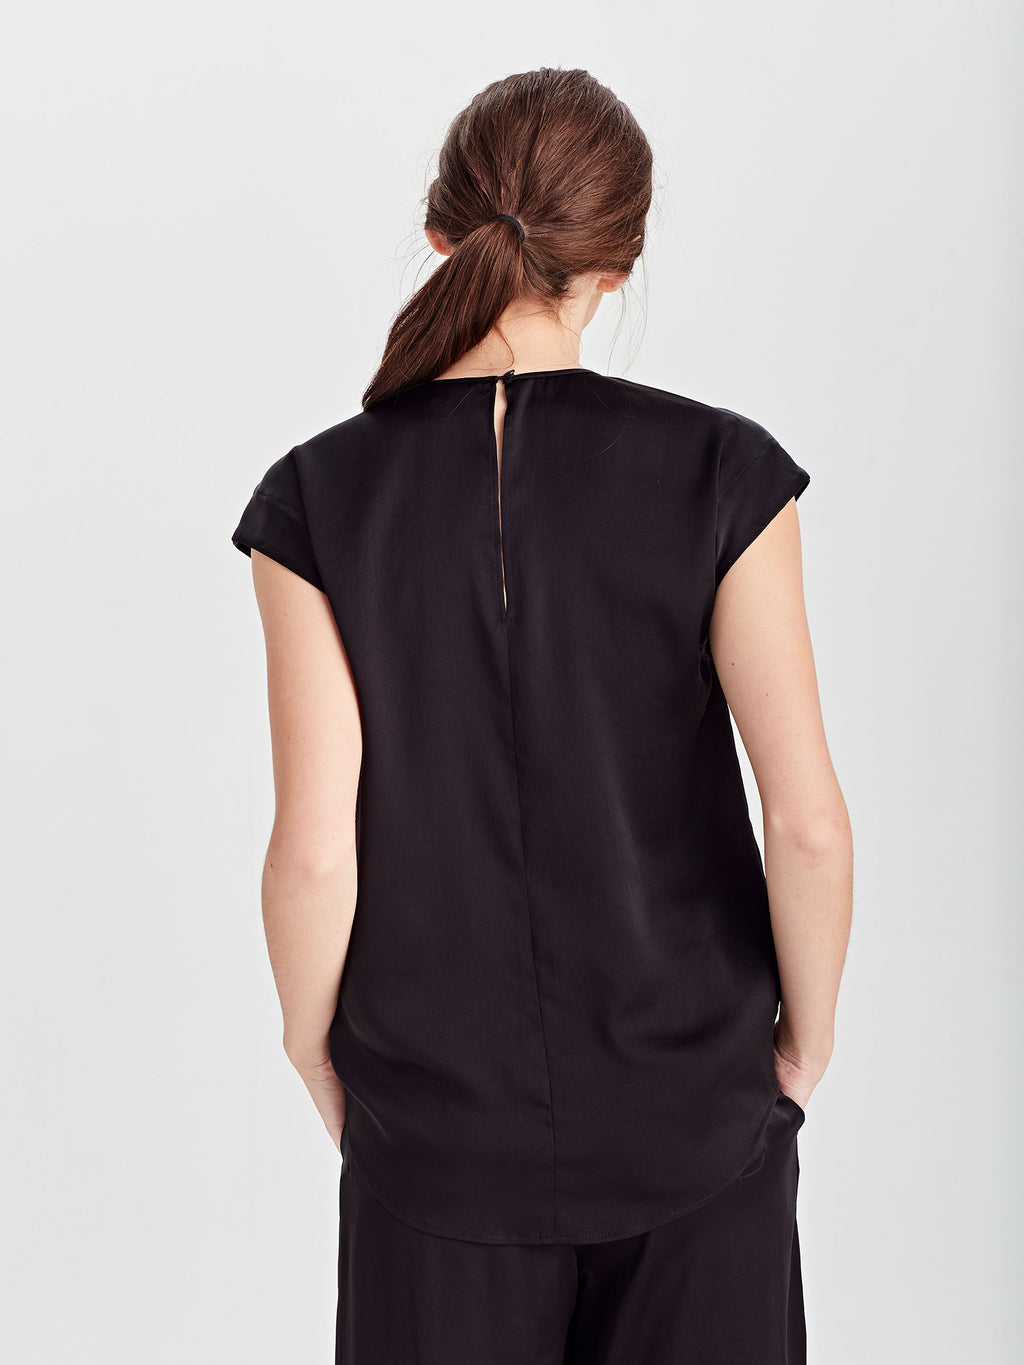 Lima T (Satin Triacetate) Black